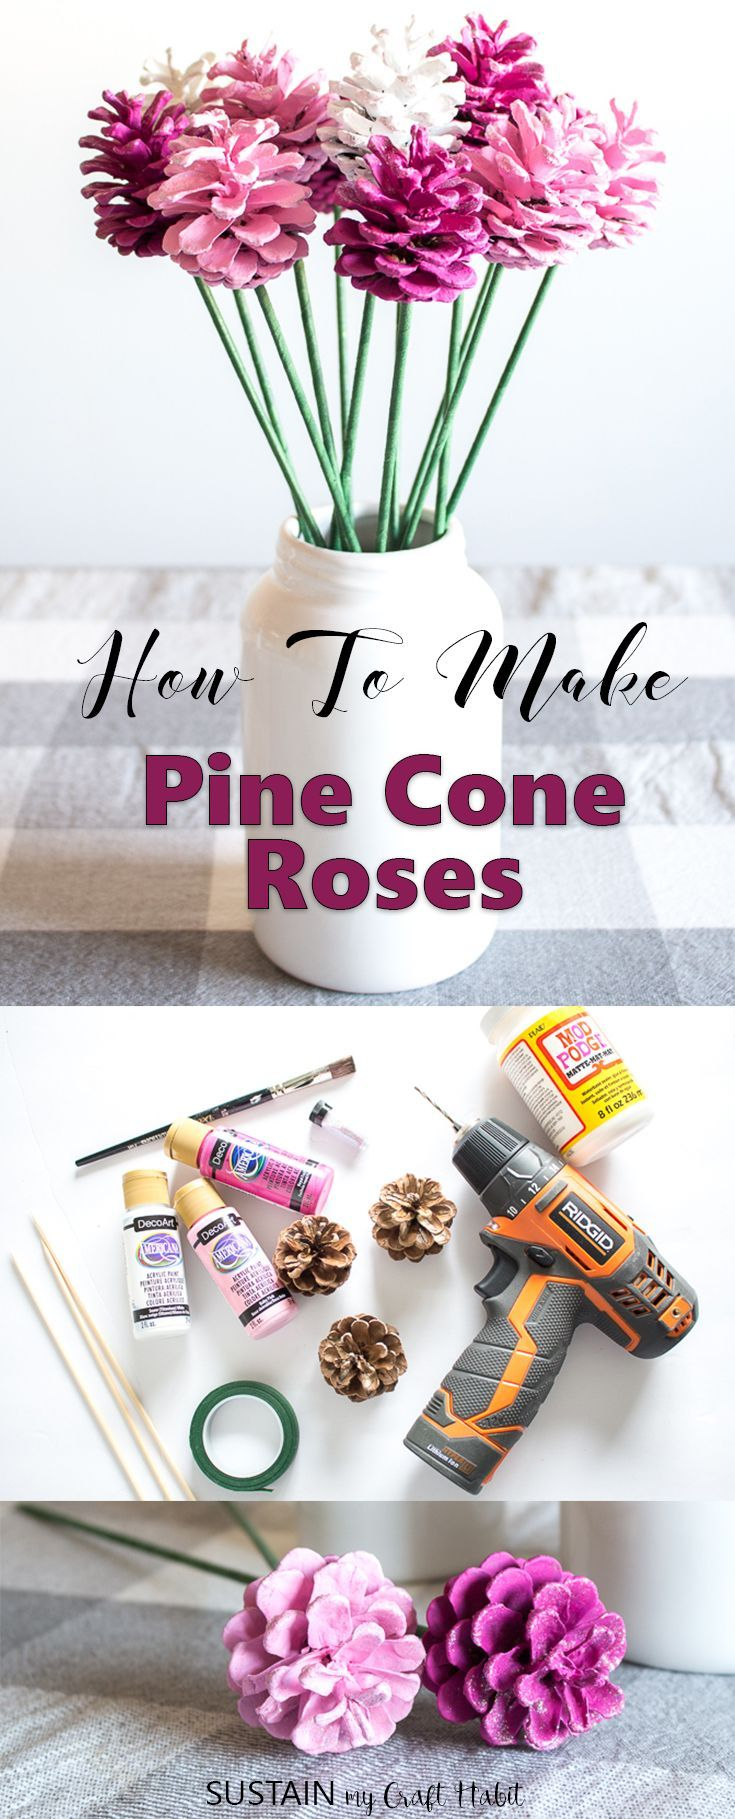 simple and pretty!!! Learn how to make Pine Cone Roses Make your own pine cone roses with this fun and simple tutorial by Sustain My Craft Habit. A beautiful, budget-friendly rustic farmhouse decorating idea for Valentine's, Mother's day a baby shower or more.Make your own pine cone roses with this fun and simple tutor...